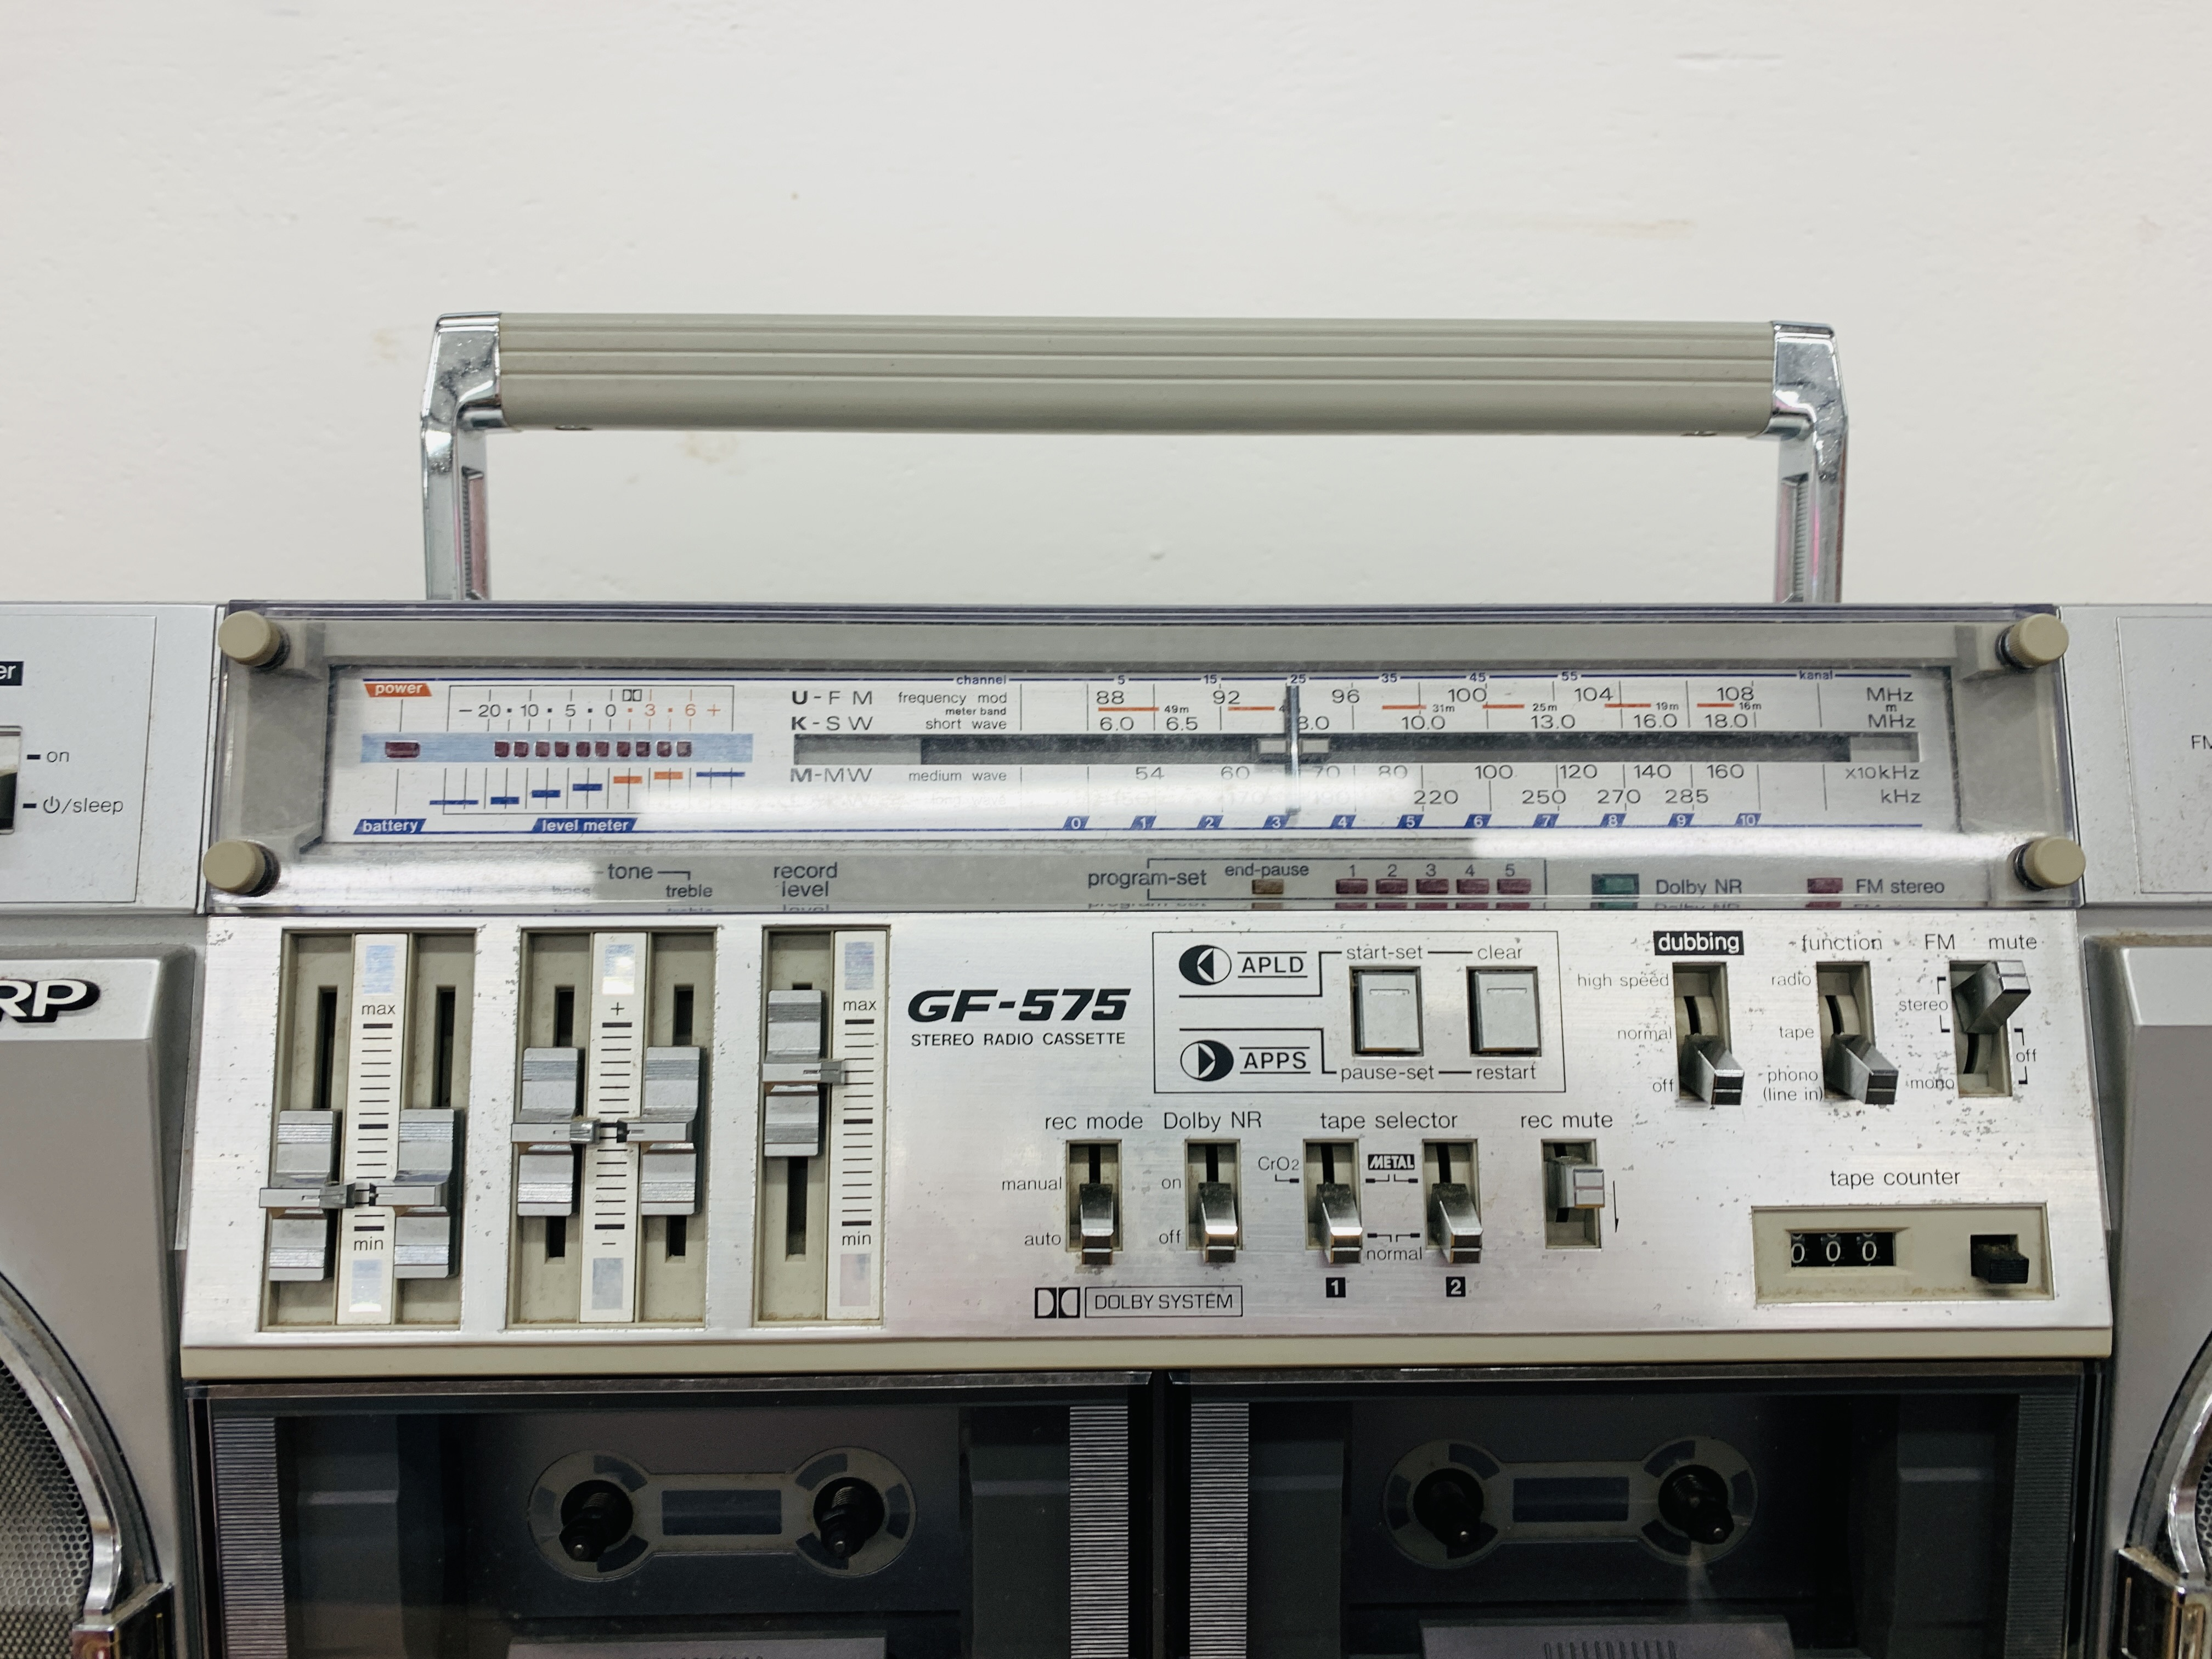 SHARP DELUXE FH / SW / MW / LW 4 BAND STEREO RADIO CASSETTE TAPE RECORDER GF- 575E WITH ORIGINAL - Image 5 of 8